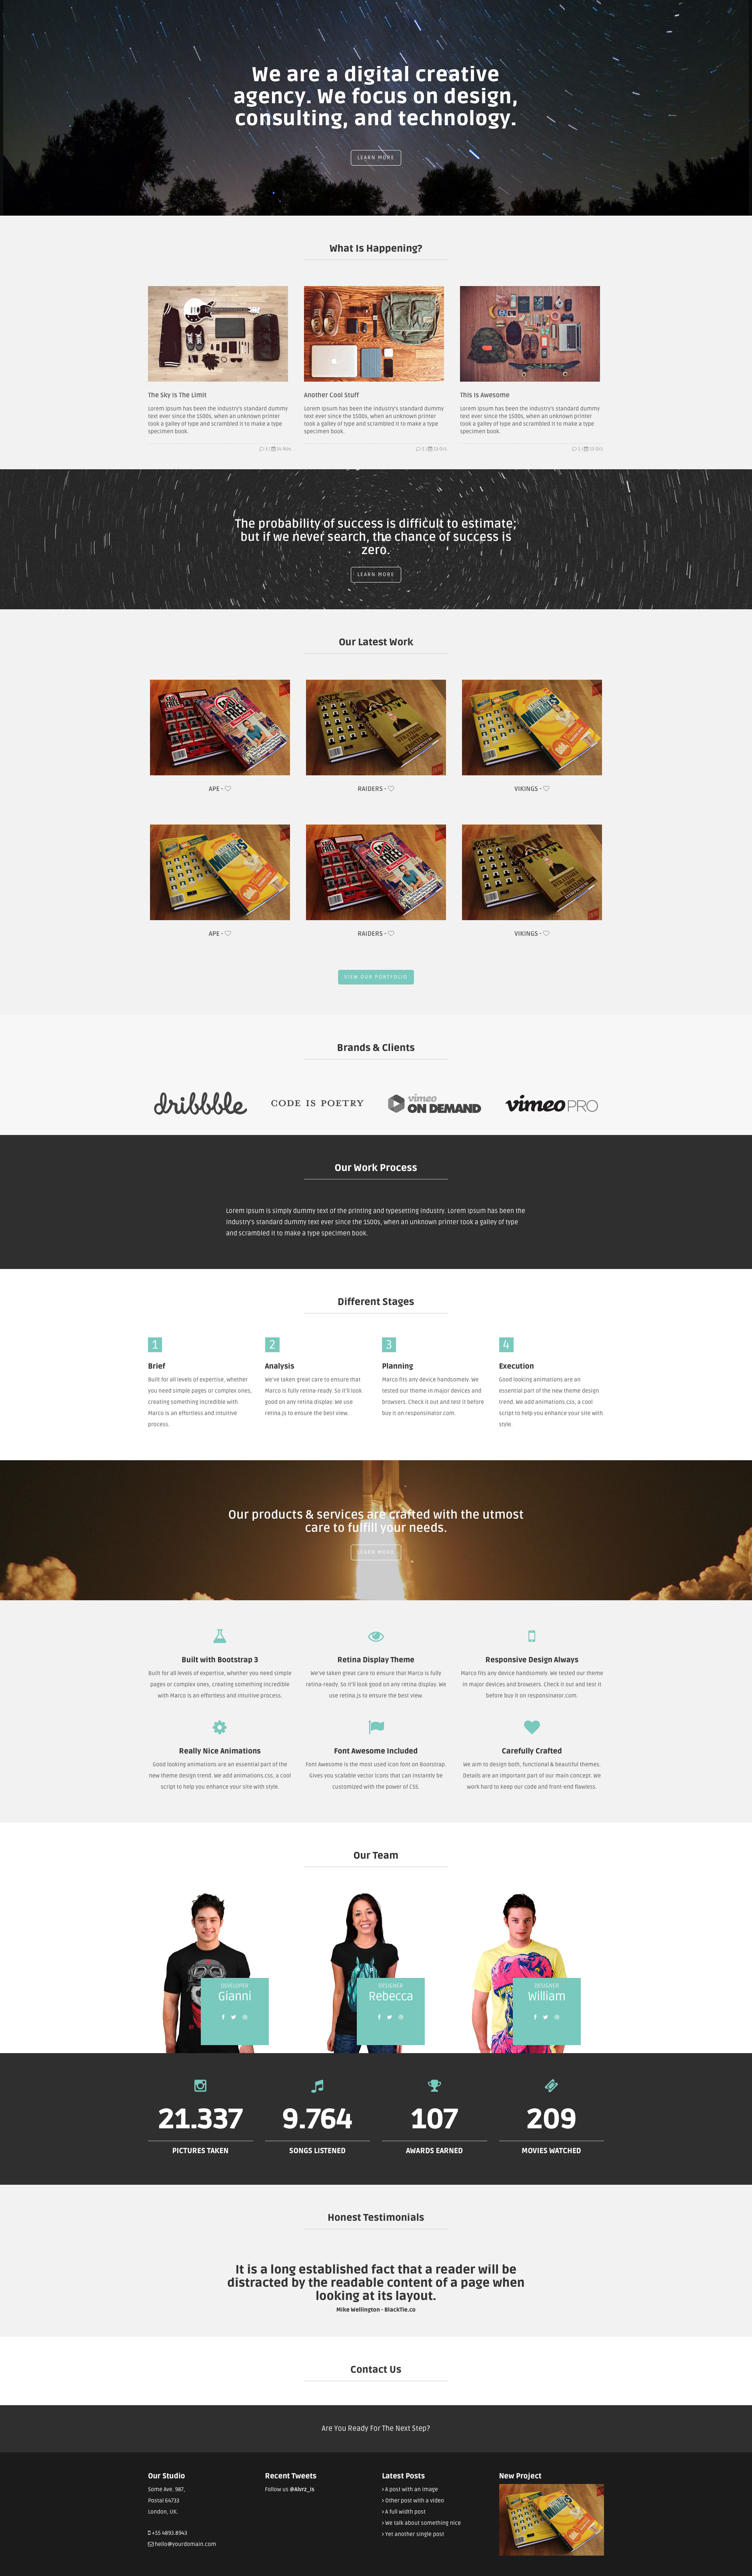 Marco is a stylish free one page responsive HTML5 Bootstrap website template. Ideal choice for freelancers or agencies. Marco template uses FontAwesome 4.0.3 and Animation.css and of course it's fully responsive.